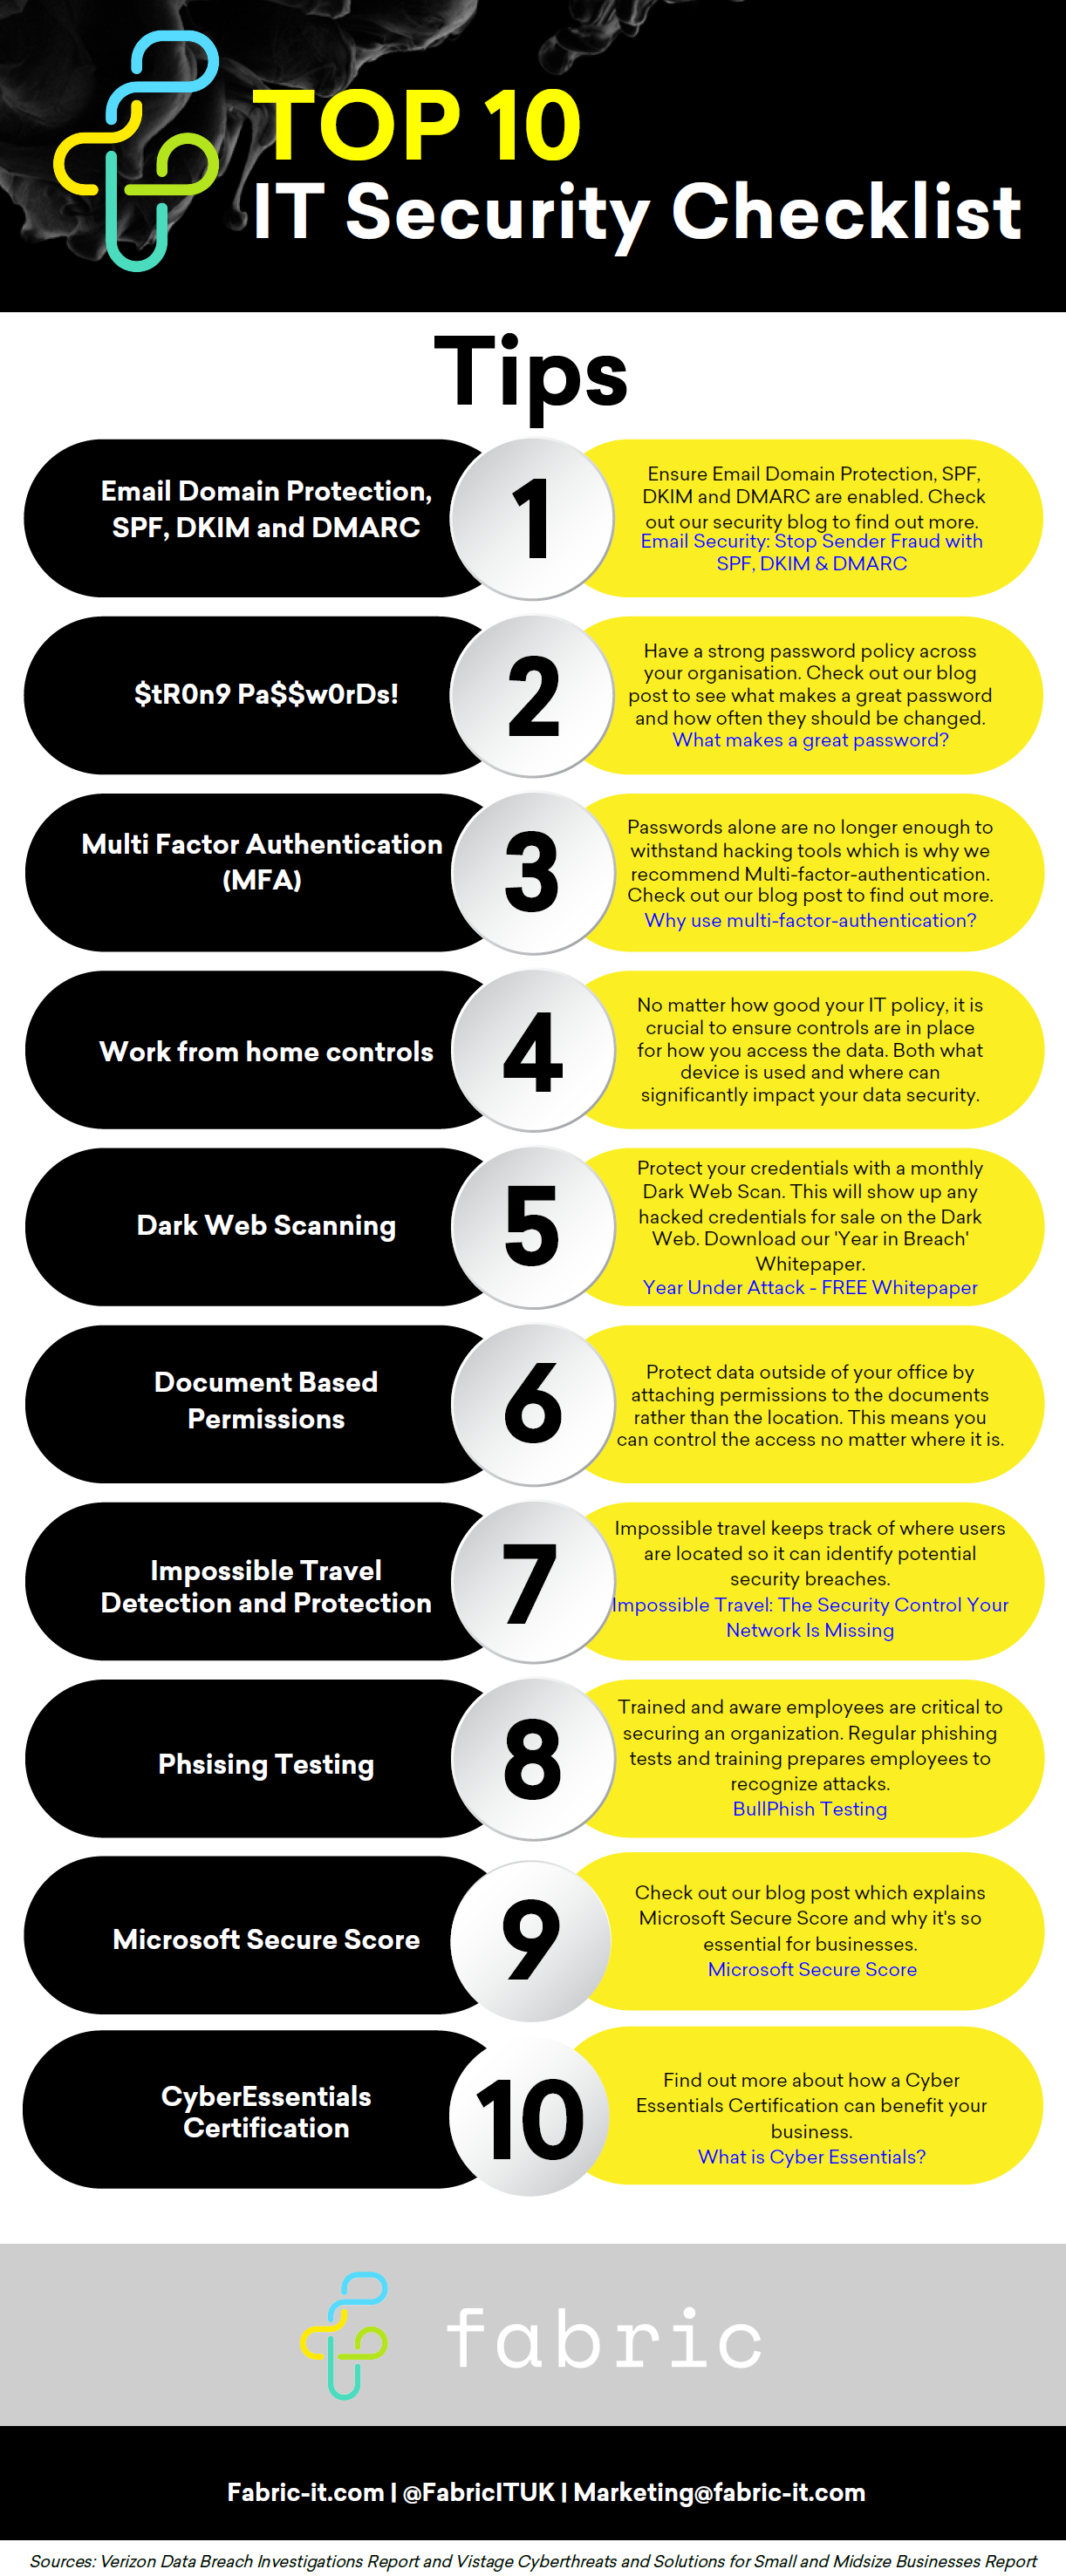 FabricIT Top 10 IT security checklist infographic